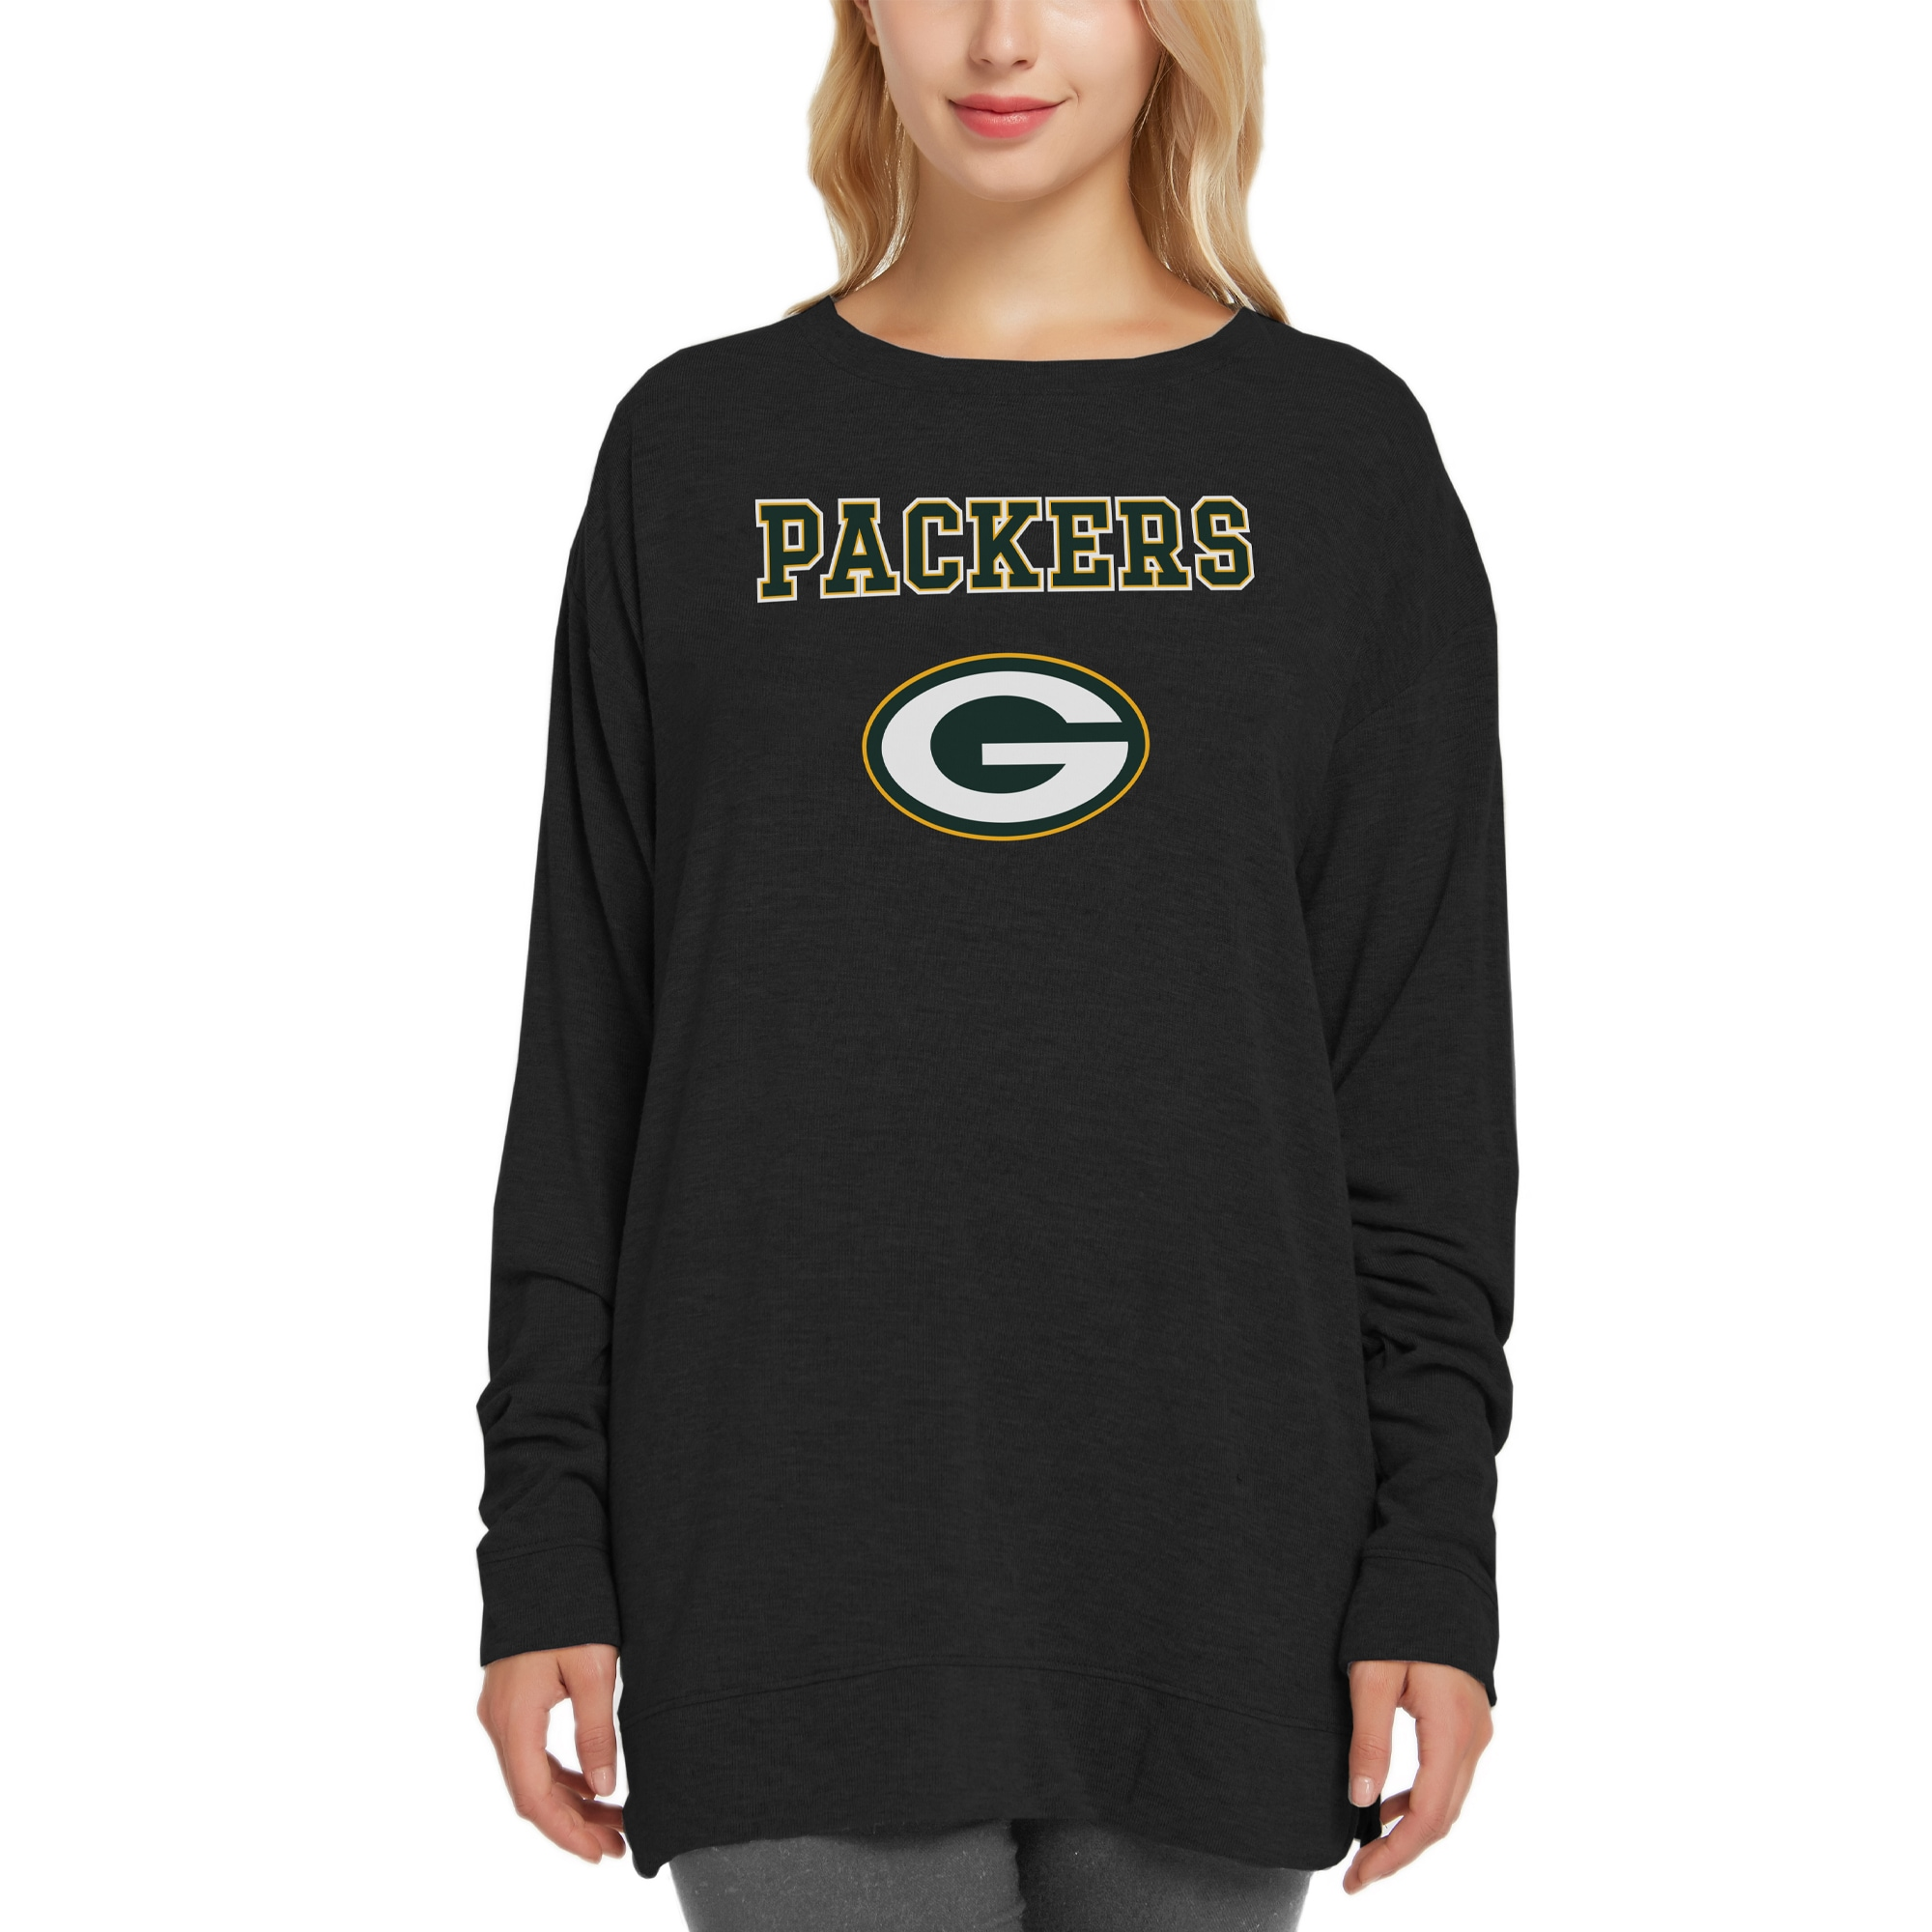 Green Bay Packers Concepts Sport Women's New Rapture Long Sleeve Top - Black